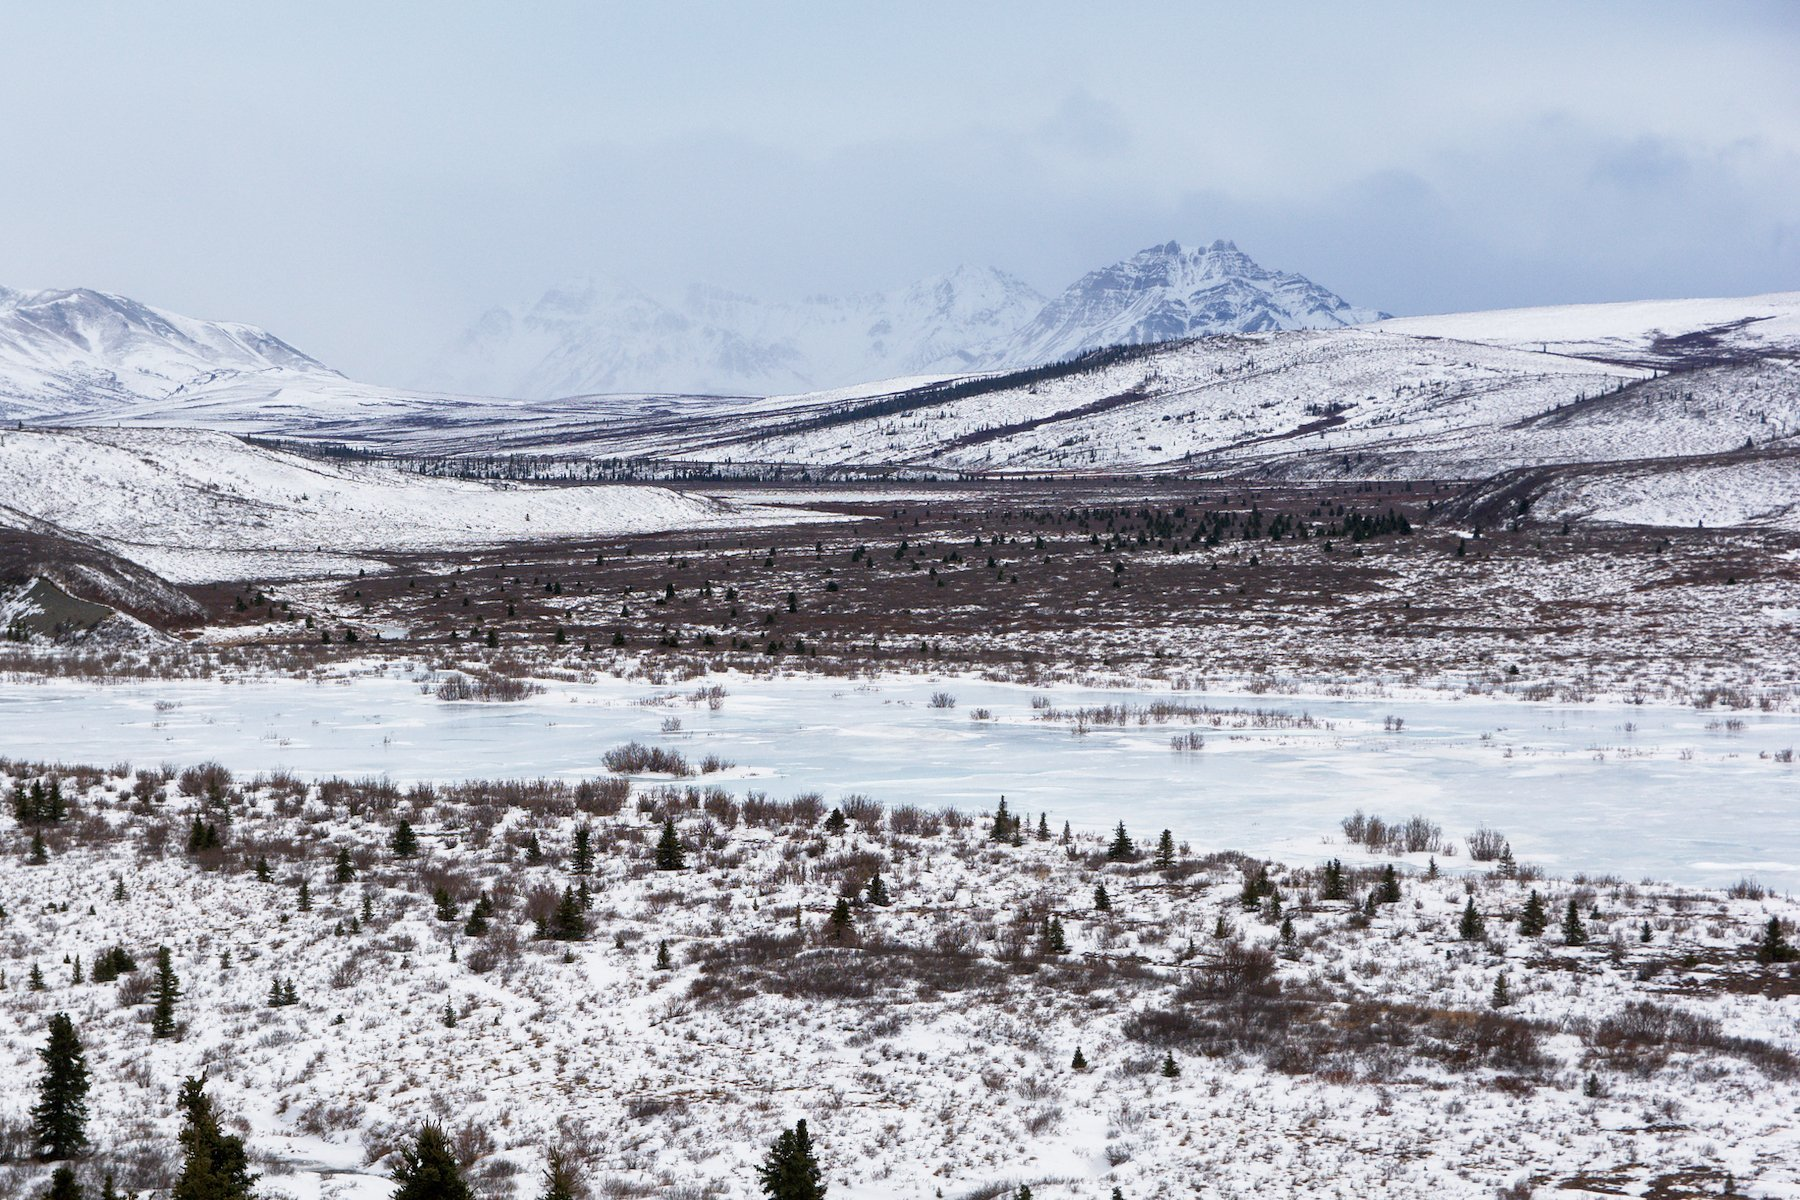 Looking at Double Mountain over the frozen Savage River in Denali National Park.